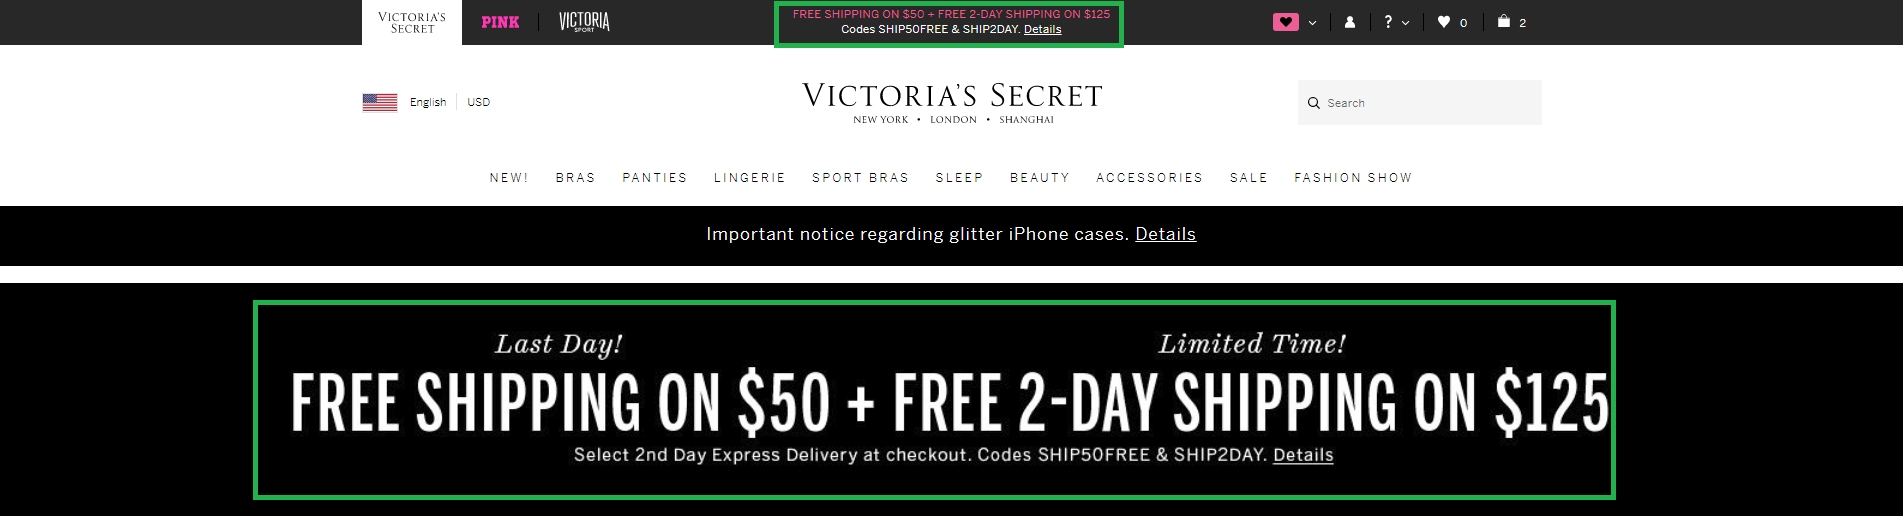 Victoria secret free seamless panty coupon code